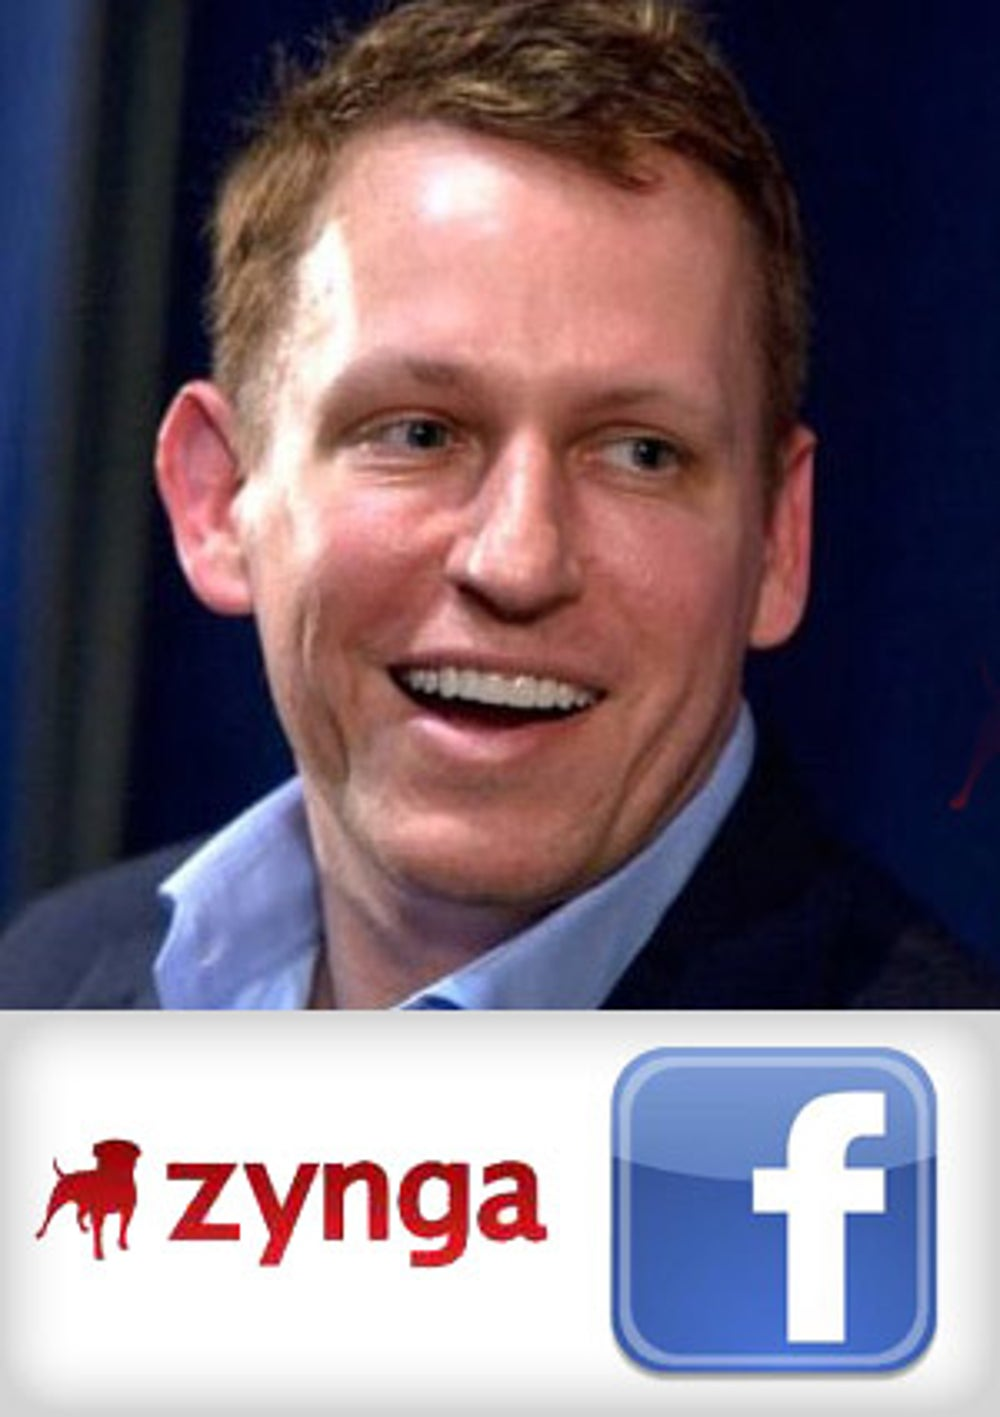 Peter Thiel, investments: Facebook and Zynga